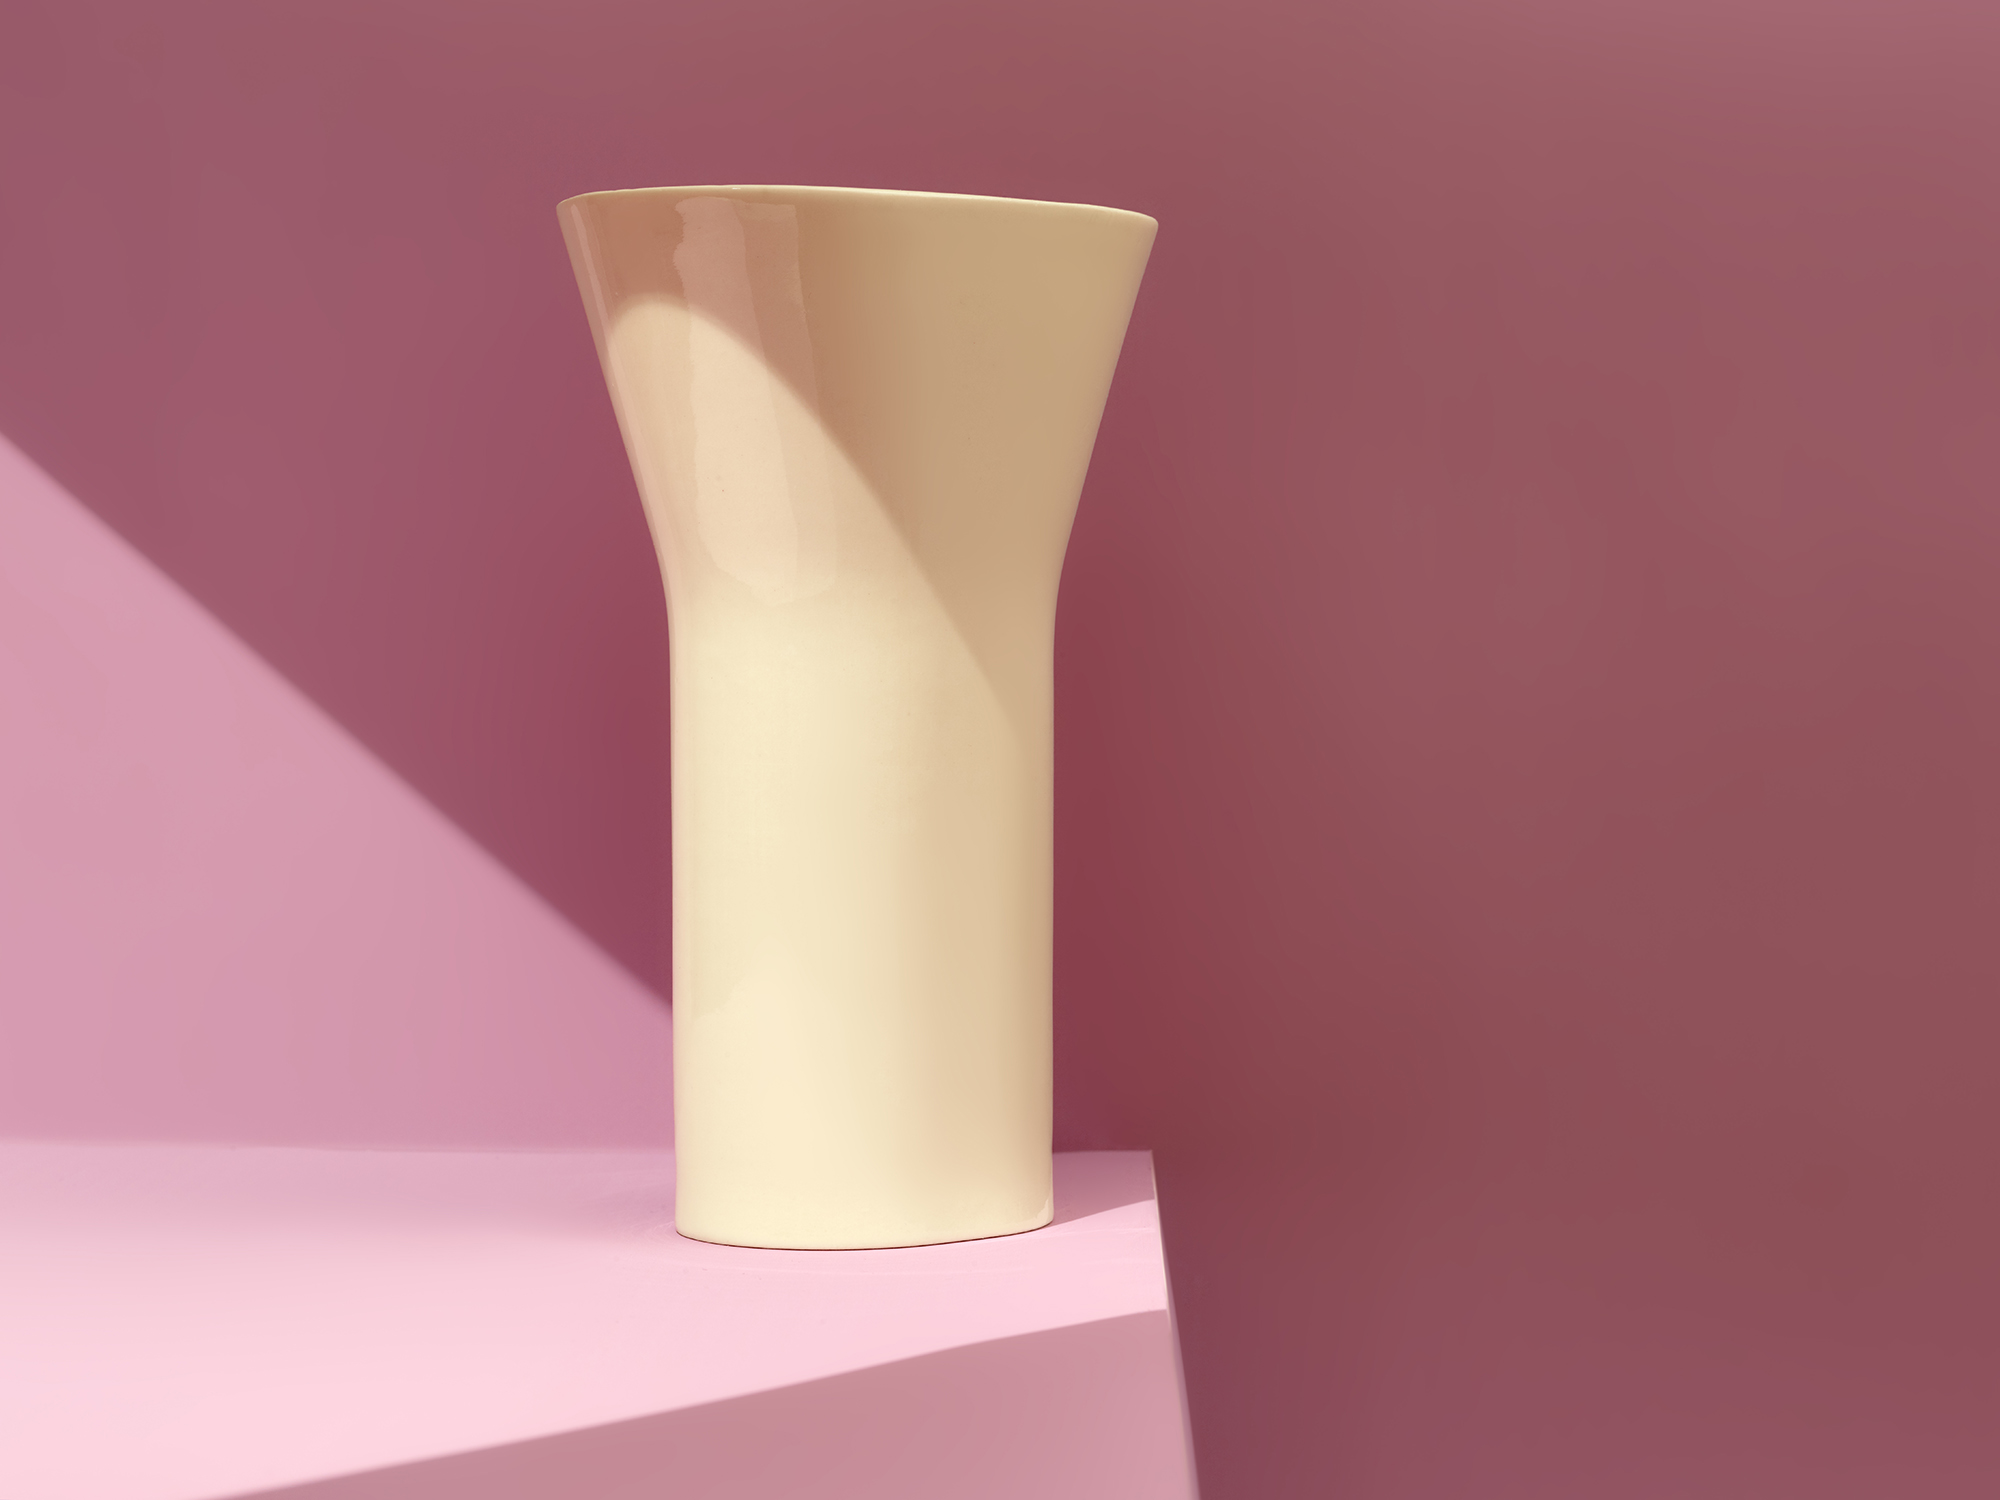 MIID exhaust vase